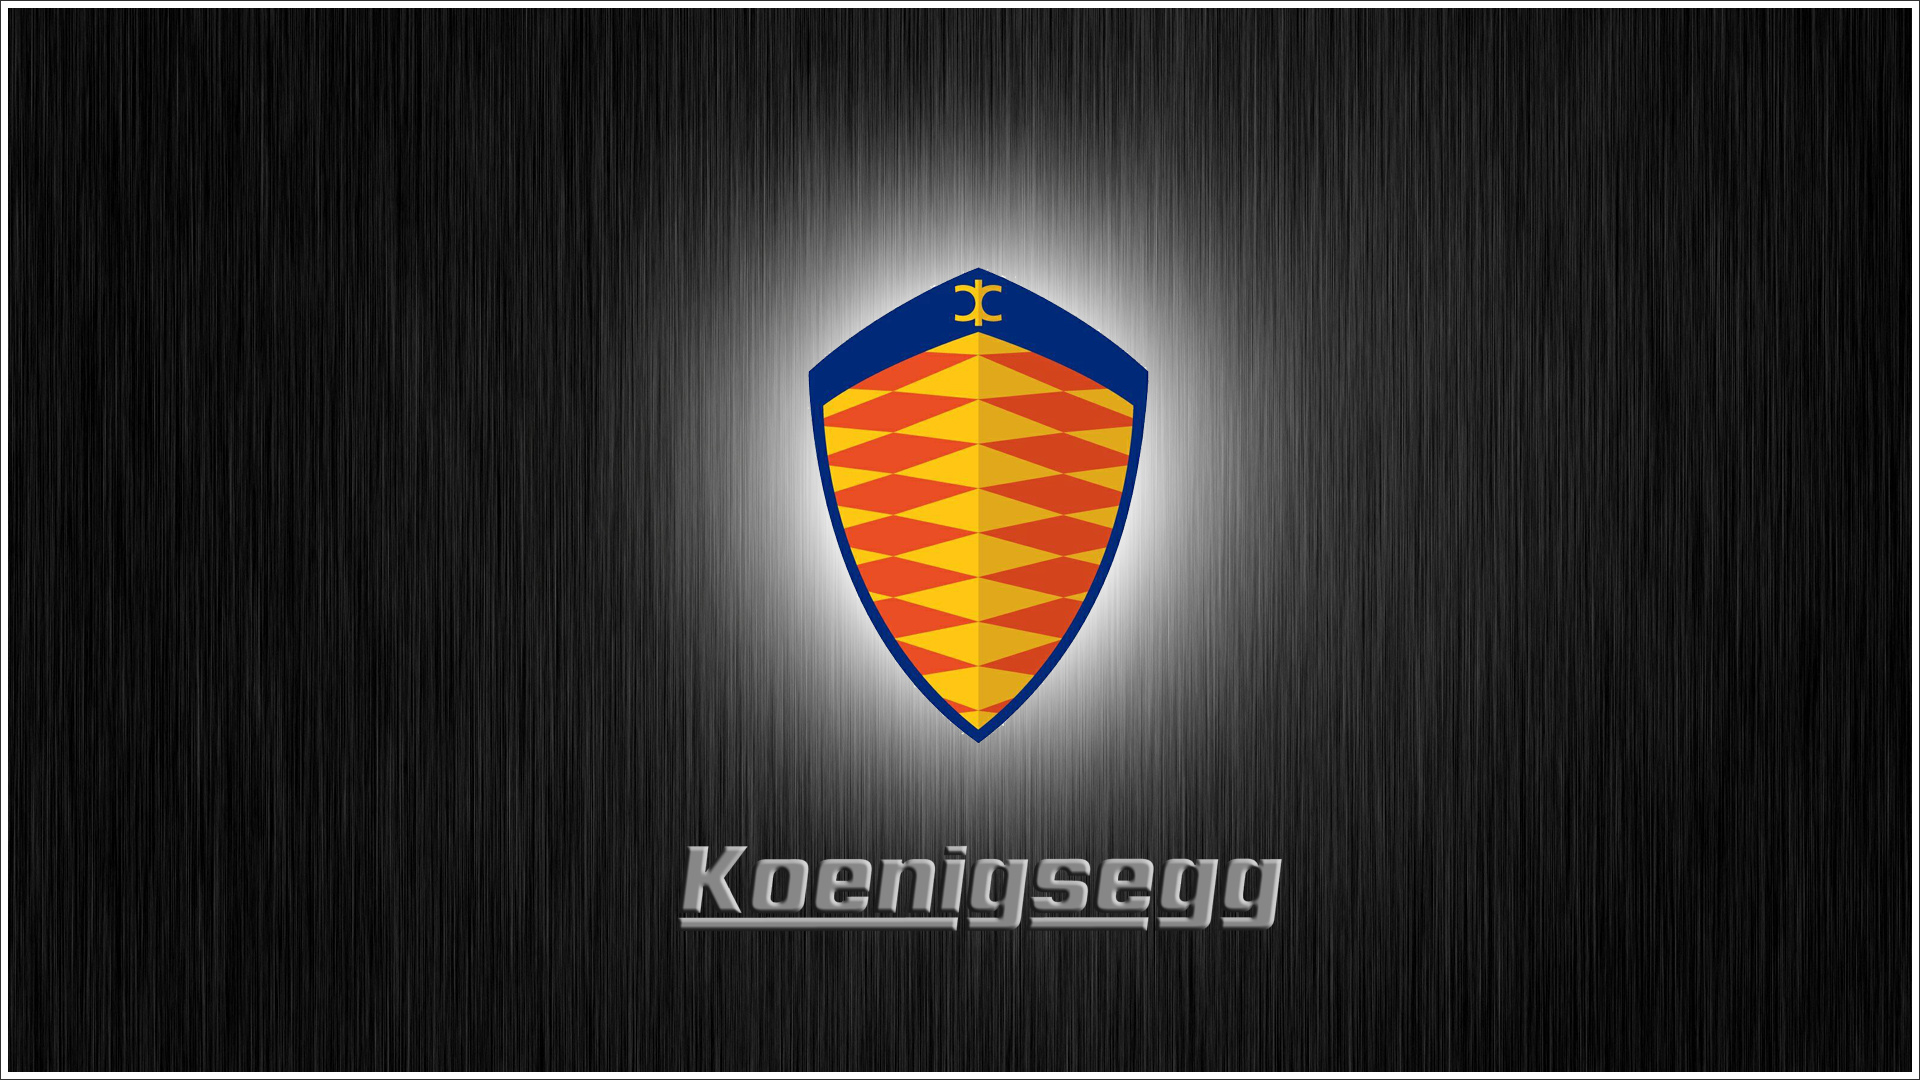 Koenigsegg Emblem Wallpaper